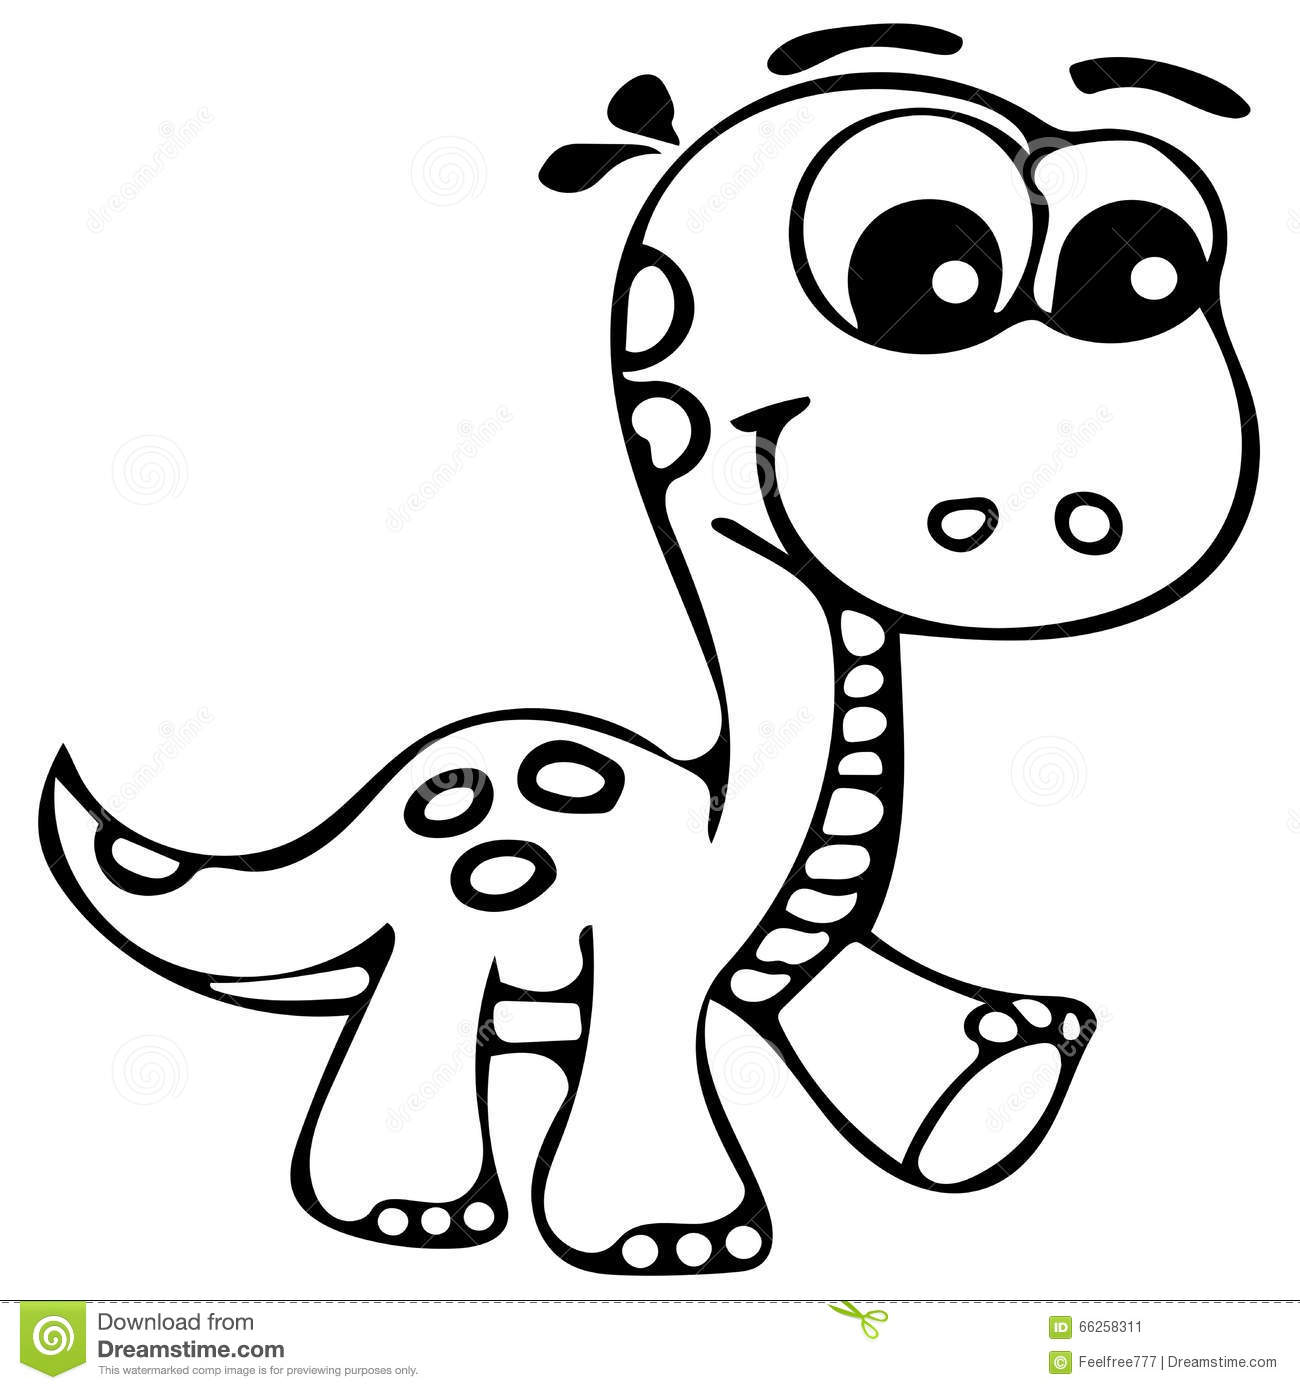 Dinosaur Kids Drawing at GetDrawings.com | Free for personal use ...